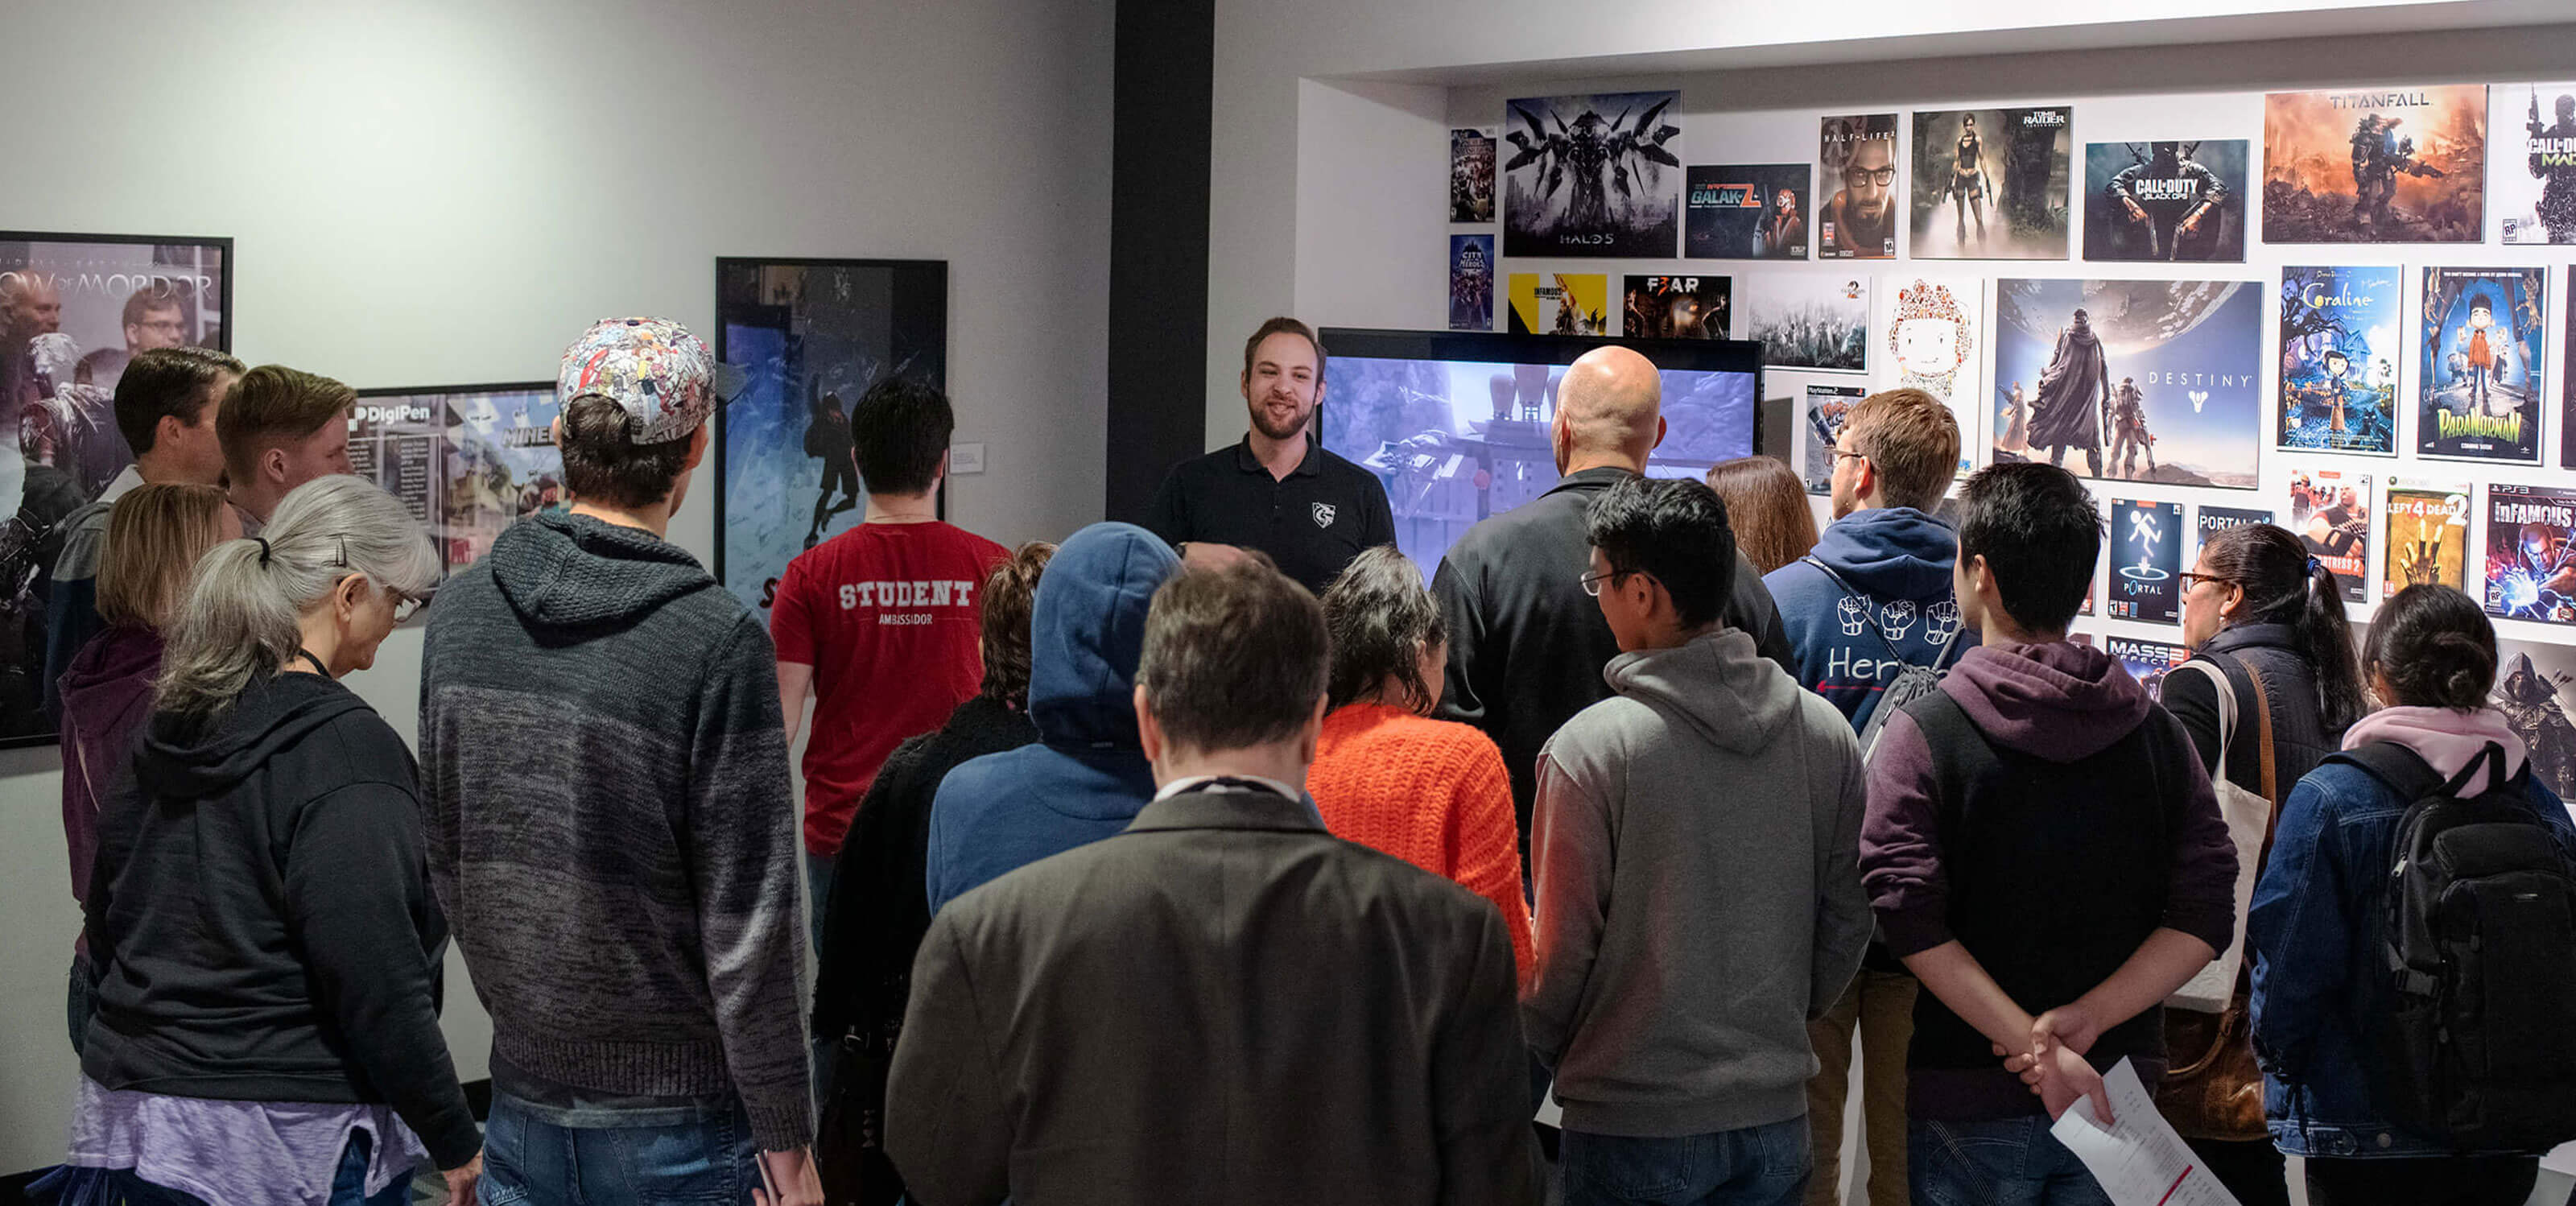 A group of people seen from behind as a man in a black polo shirt addresses them in a hallway strewn with video game posters.